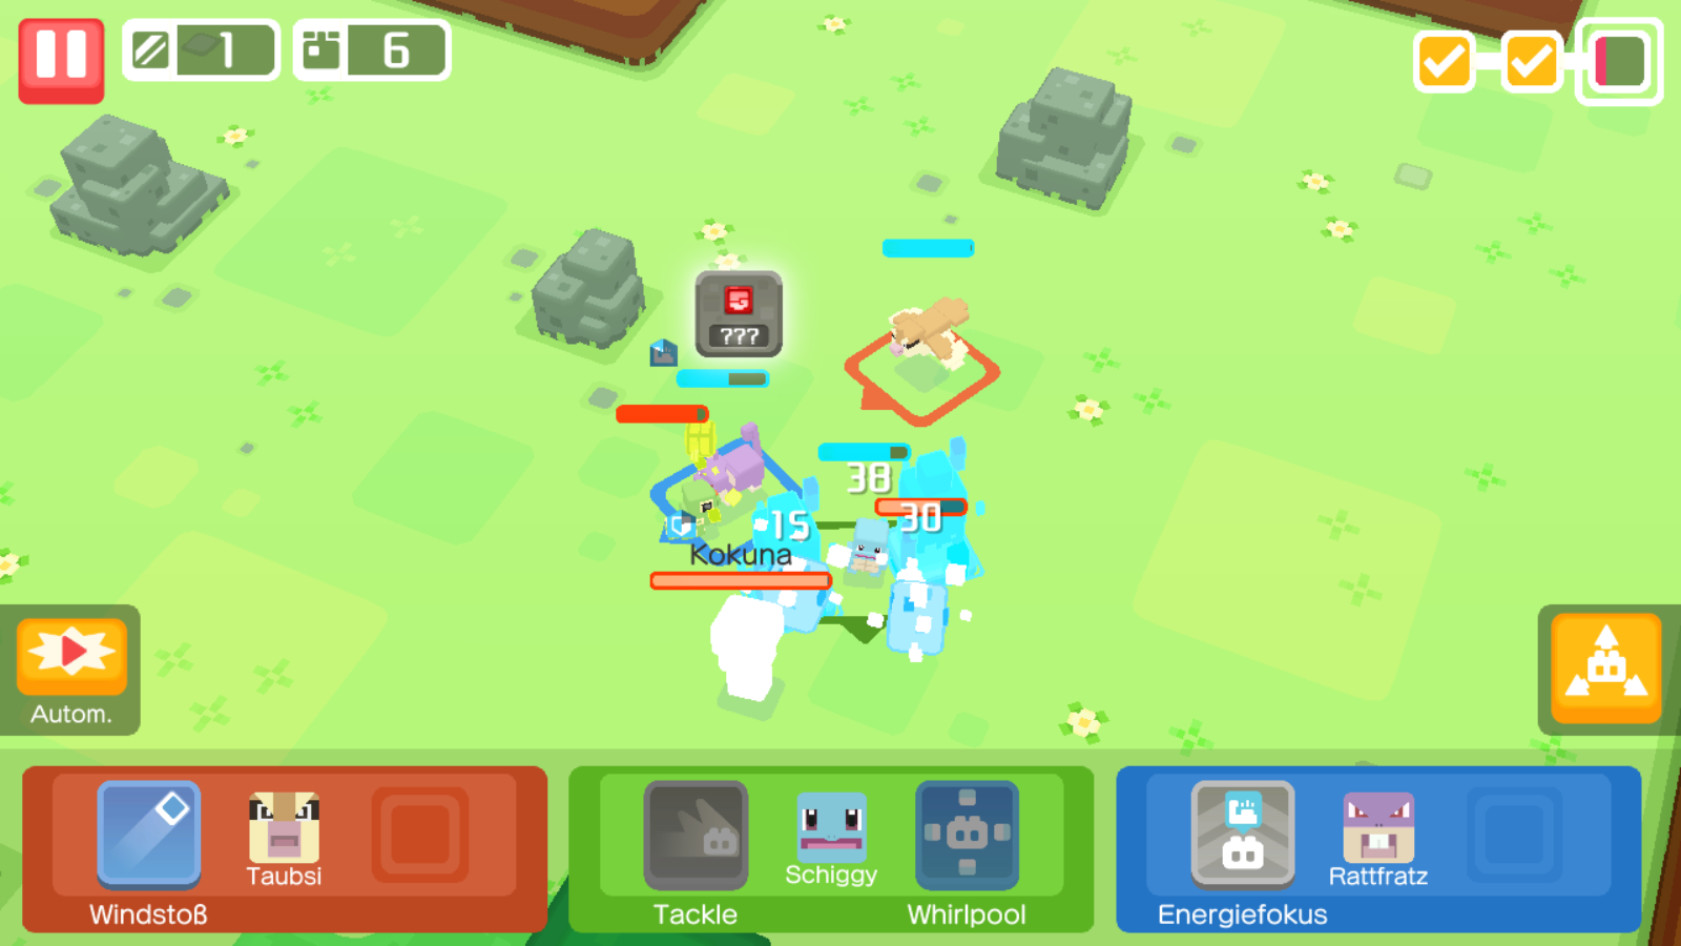 Screenshot 1 - Pokémon Quest (Android-App)